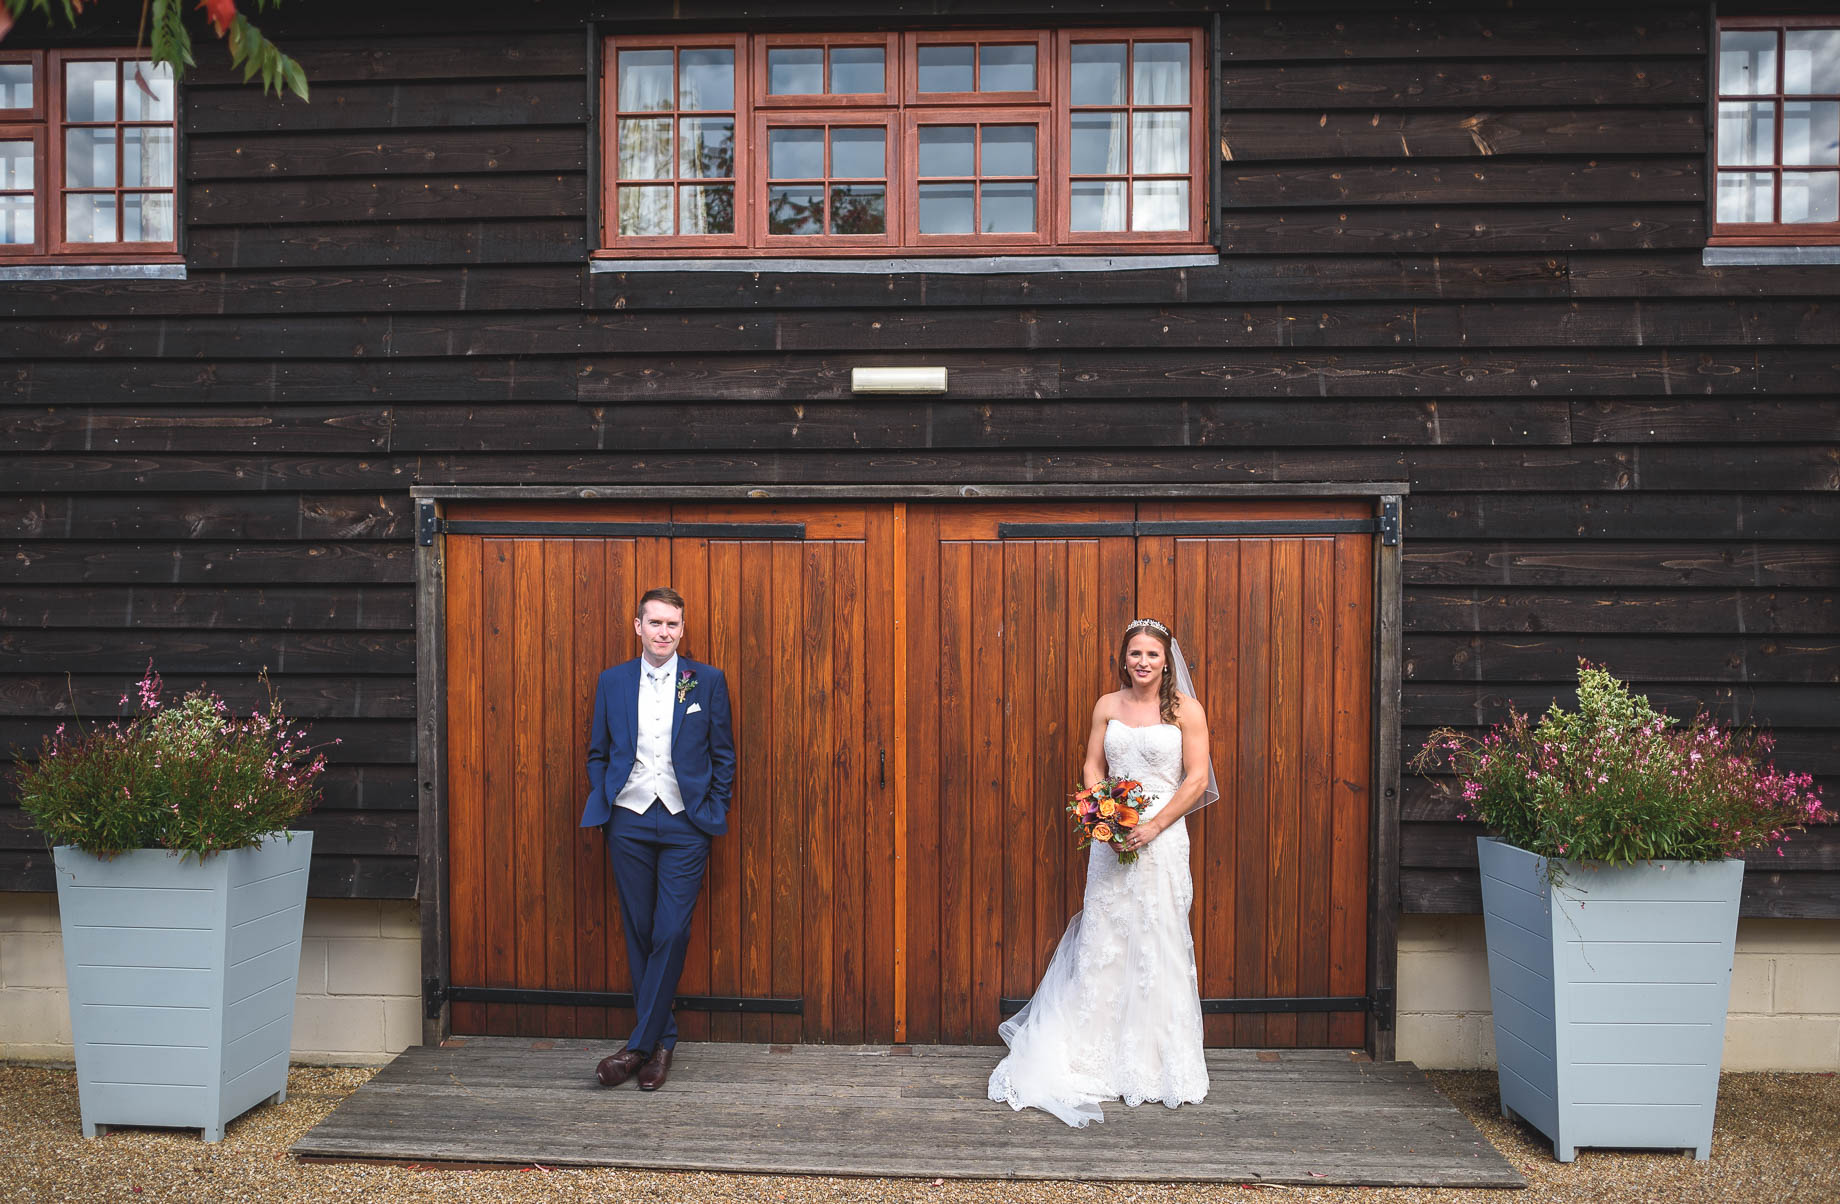 Gate Street Barn wedding photography - Guy Collier - Claire and Andy (68 of 192)